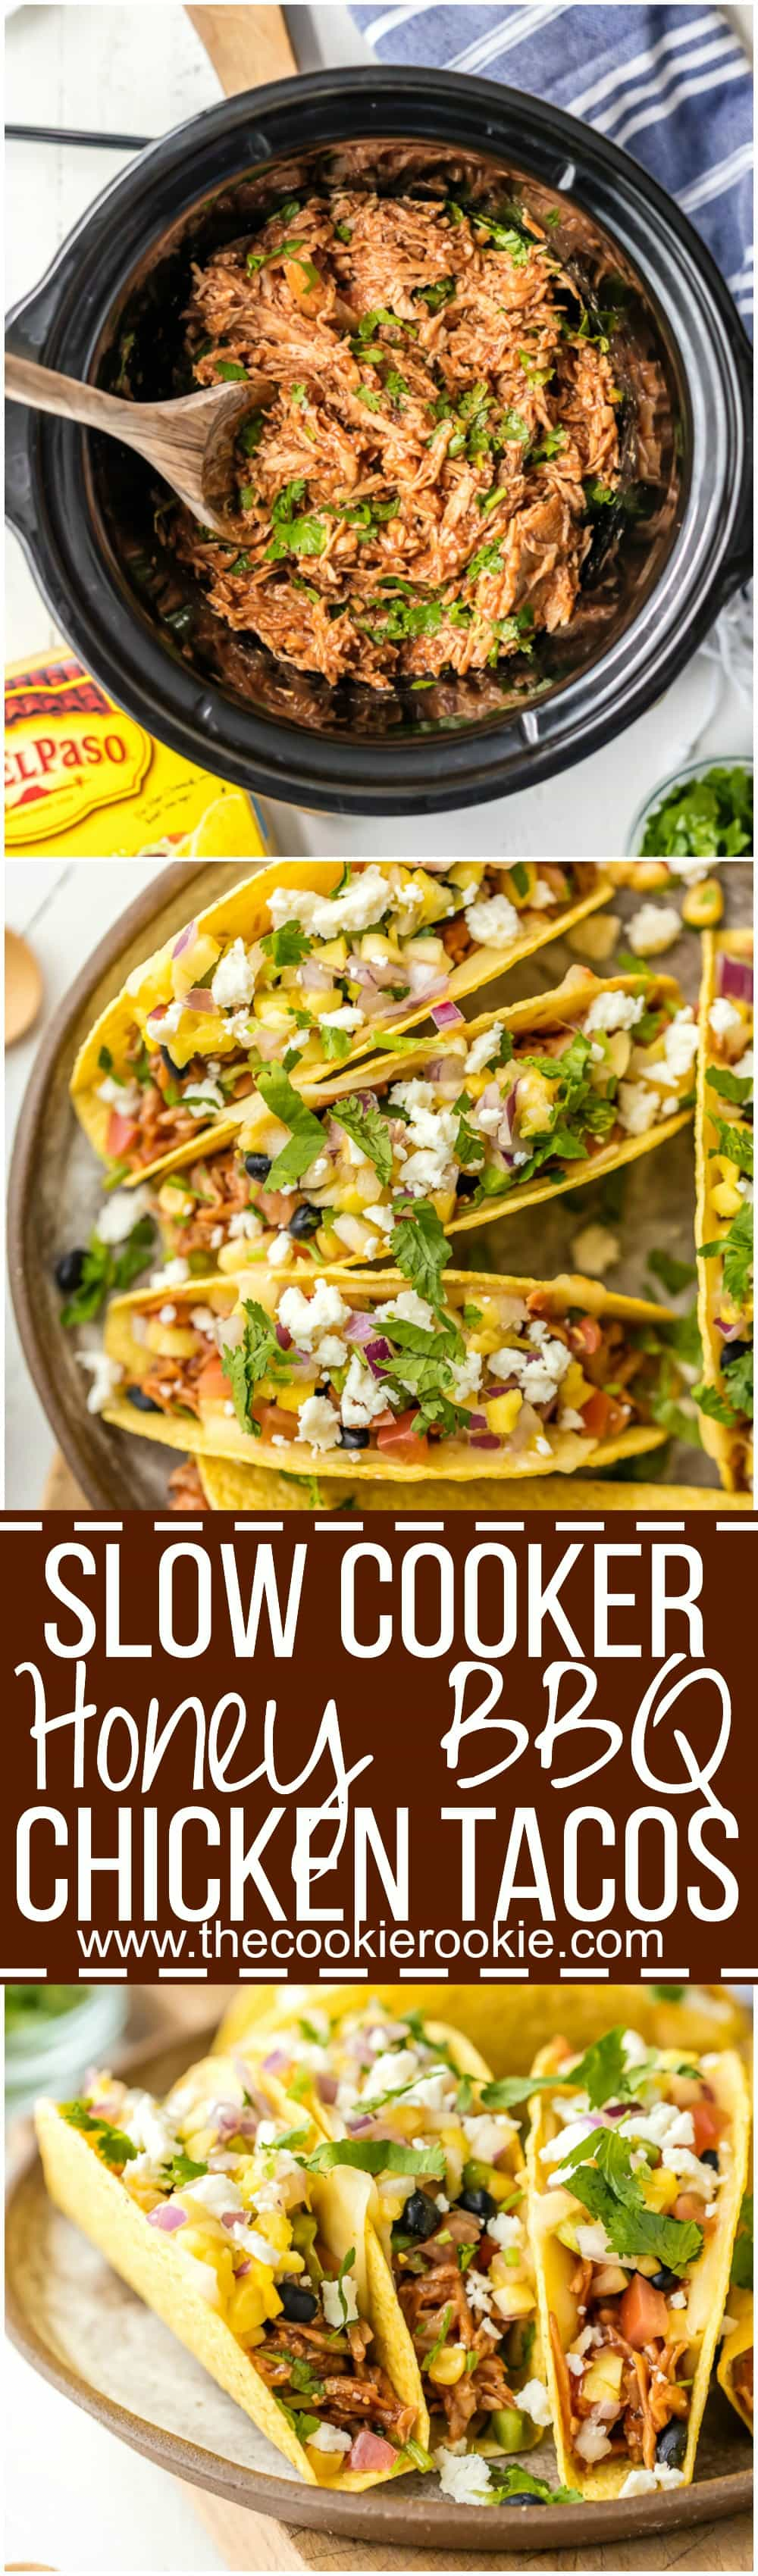 Slow Cooker Korean Pork BBQ Tacos October 19, by Danelle Leave a Comment SLOW COOKER KOREAN PORK BBQ TACOS — Pork is slow cooked until tender, then shredded and served in tortillas with a sweet and spicy sauce and simple cabbage slaw in these unique and delicious giveback.cf Time: 6 hrs 15 mins.